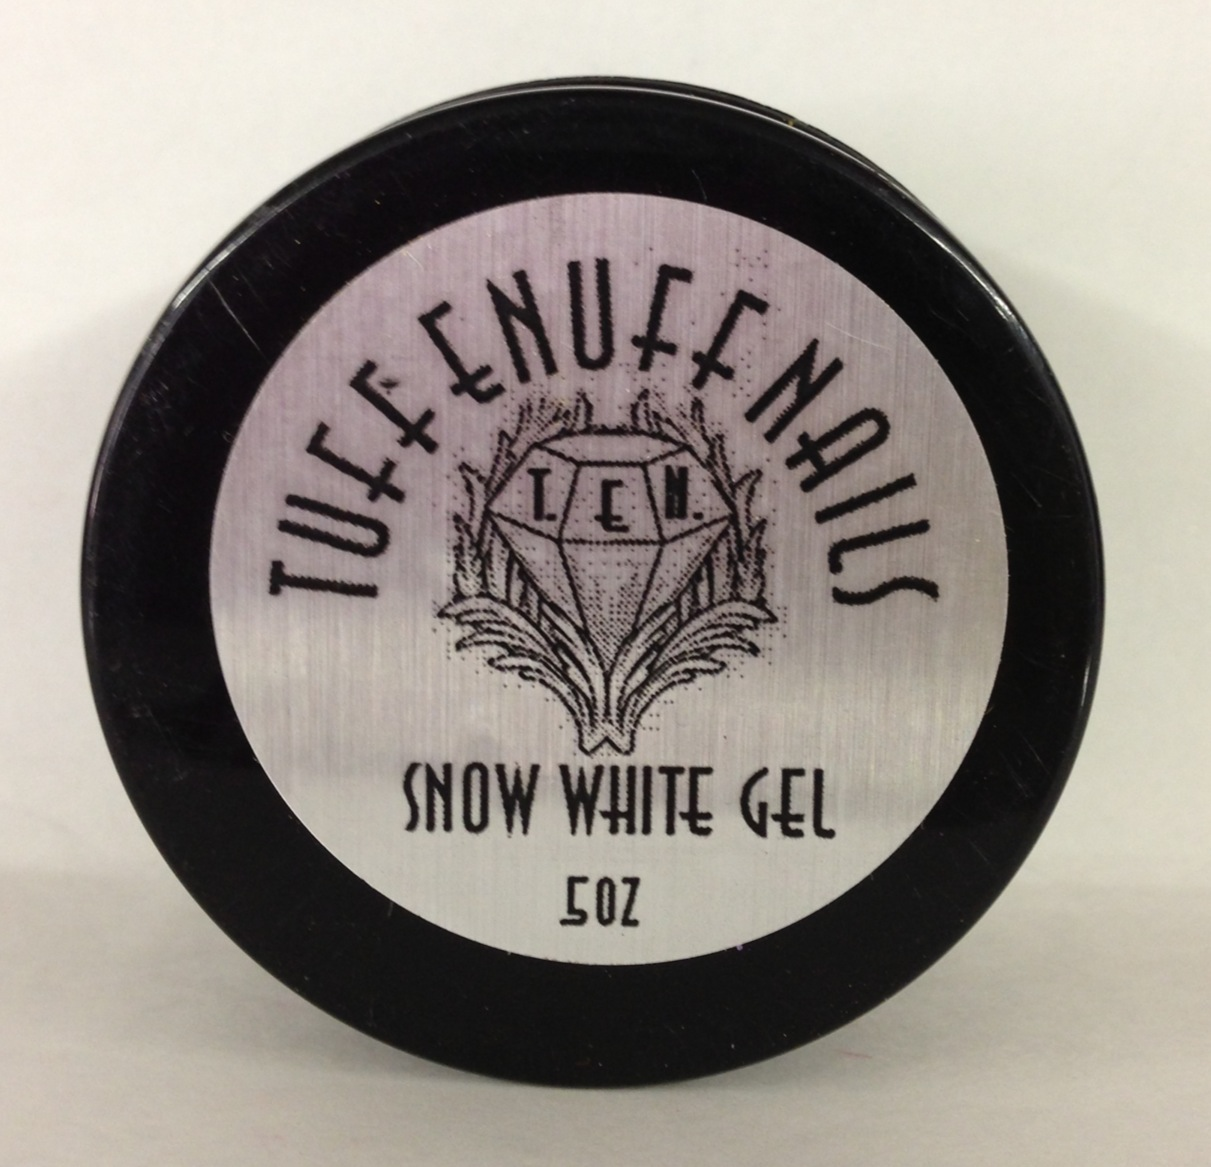 Snow White Gel .5oz